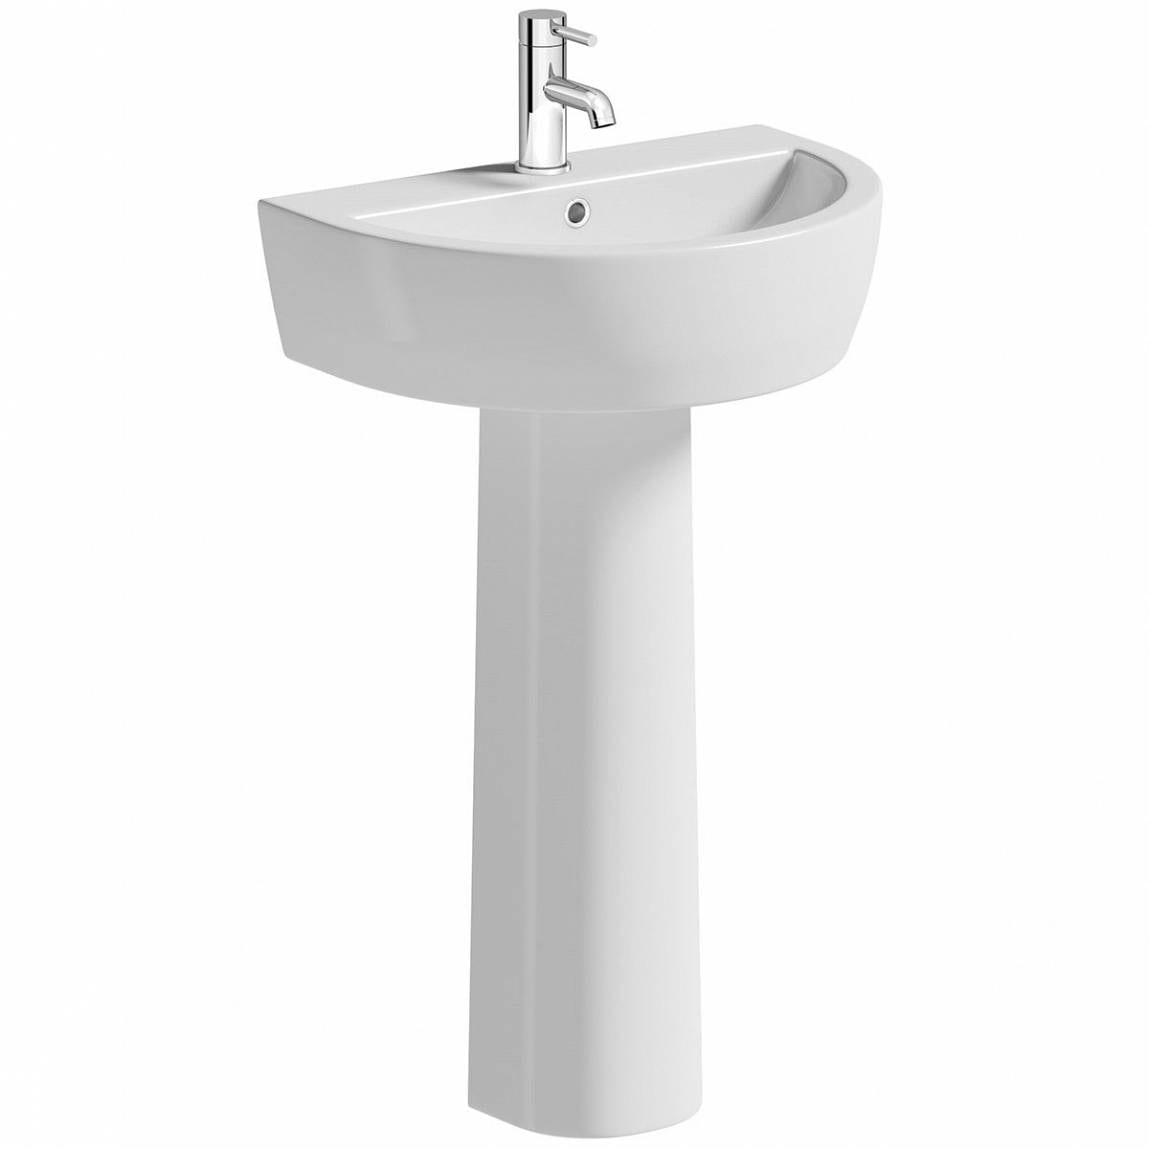 Mode Tate 1 tap hole full pedestal basin 550mm with waste